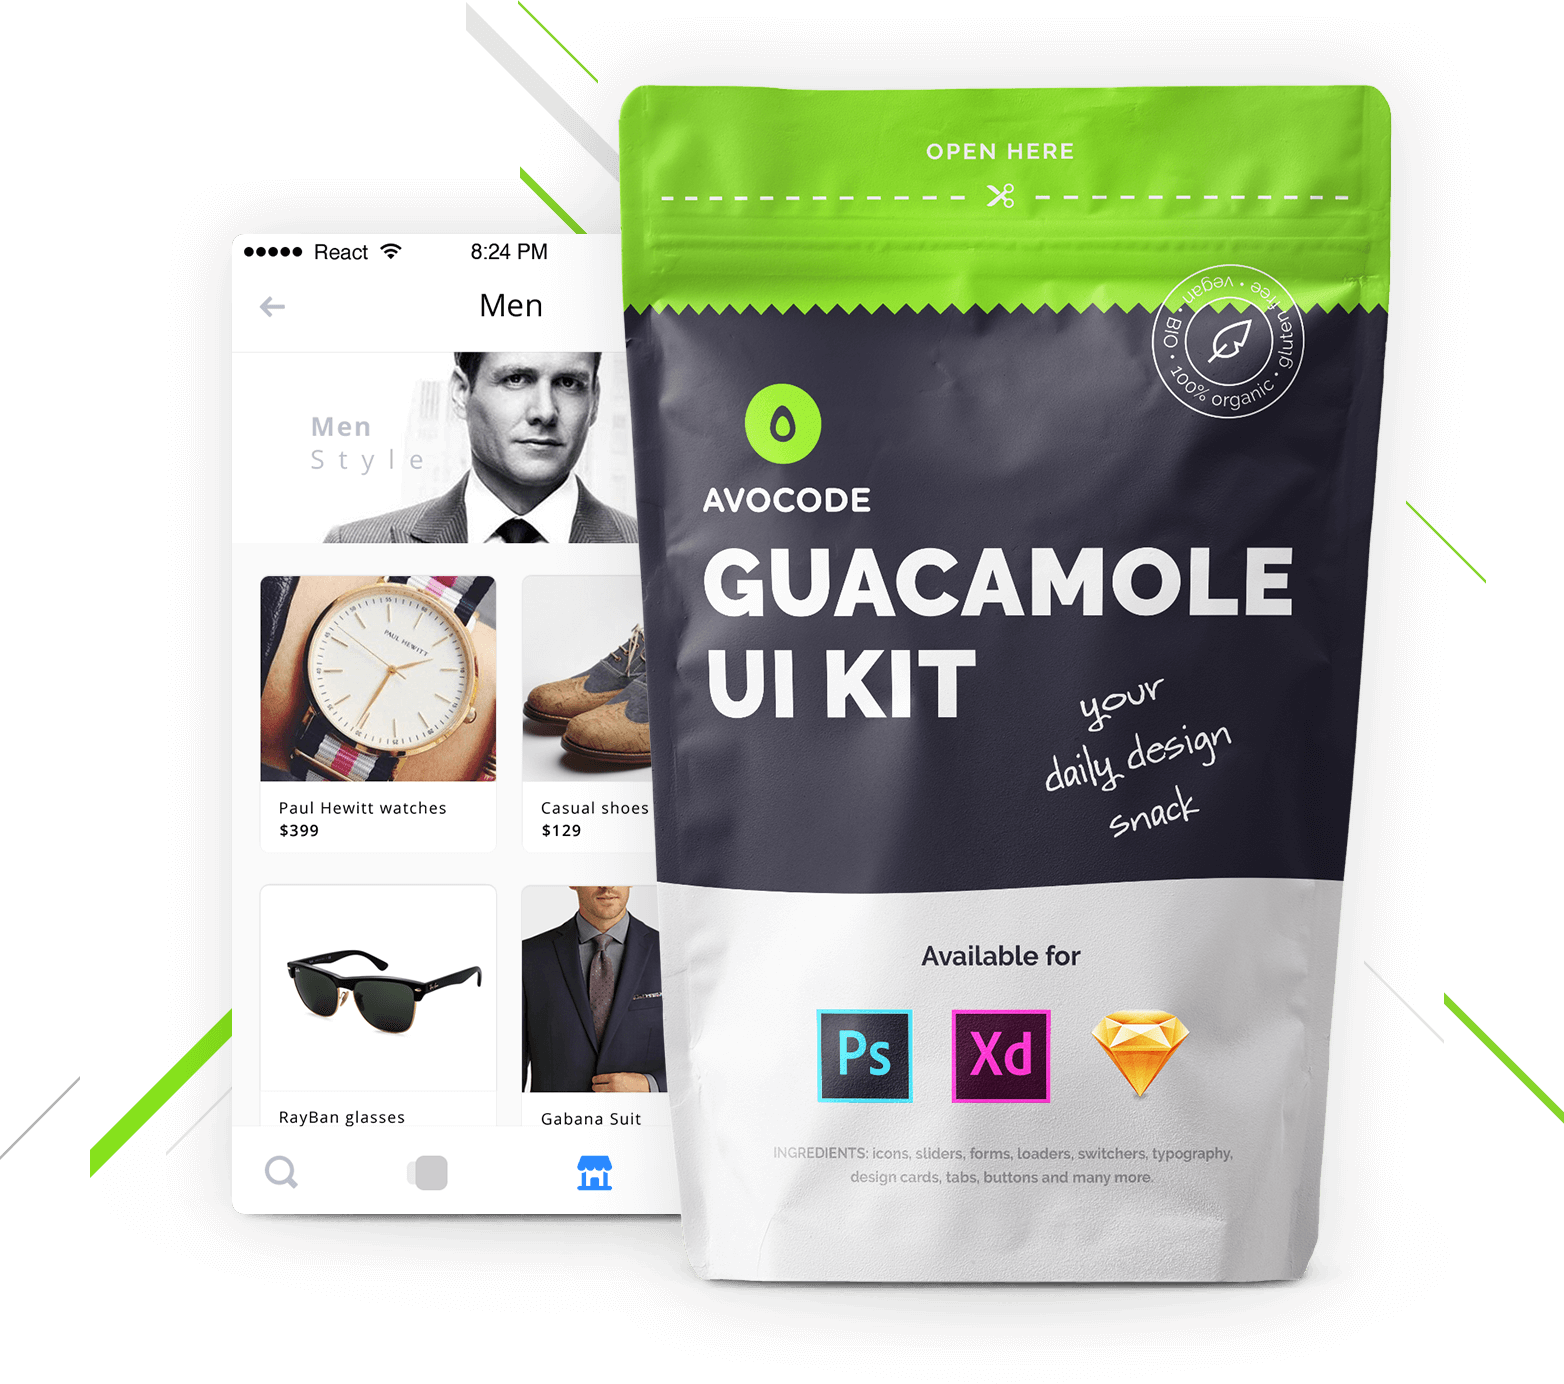 Guacamole Ui Kit By Avocode Free For Sketch Xd And Ps Avocode